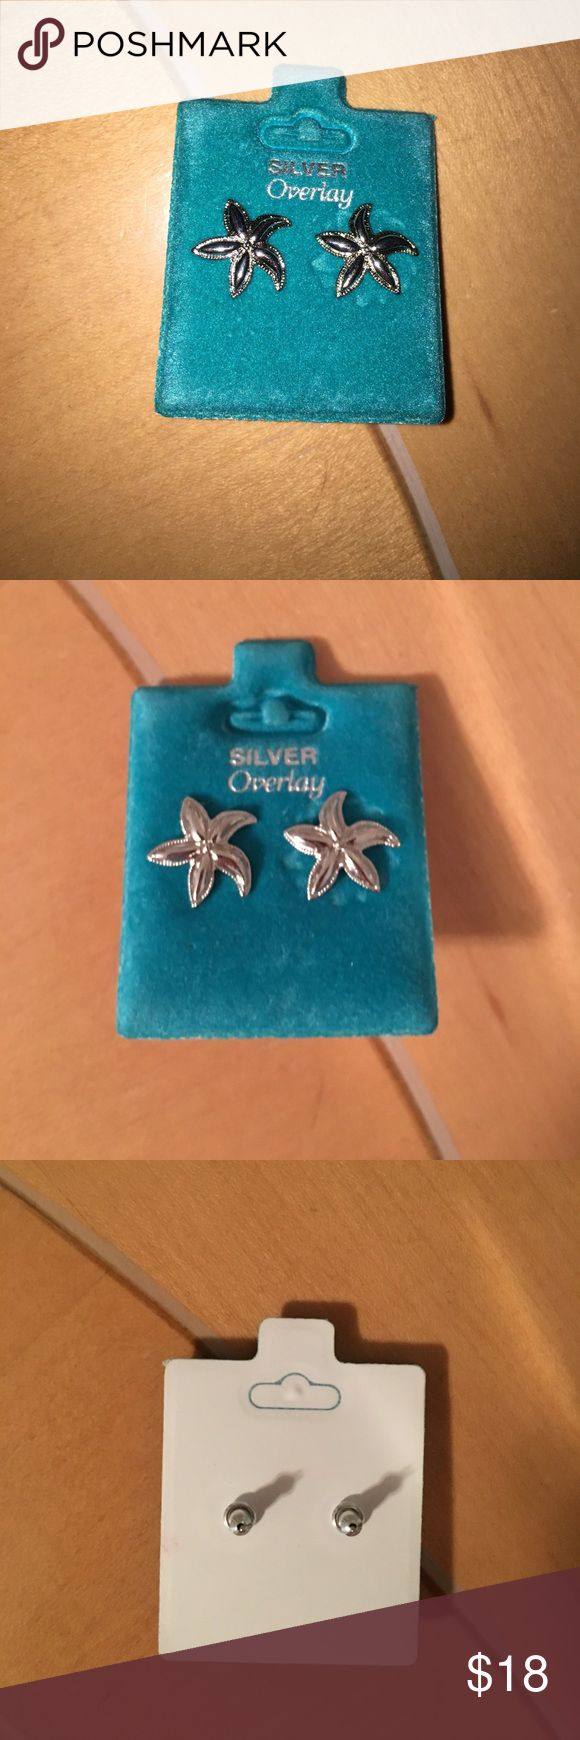 Starfish Earrings Silver Starfish Earrings Brand New Never Worn Jewelry  Earrings